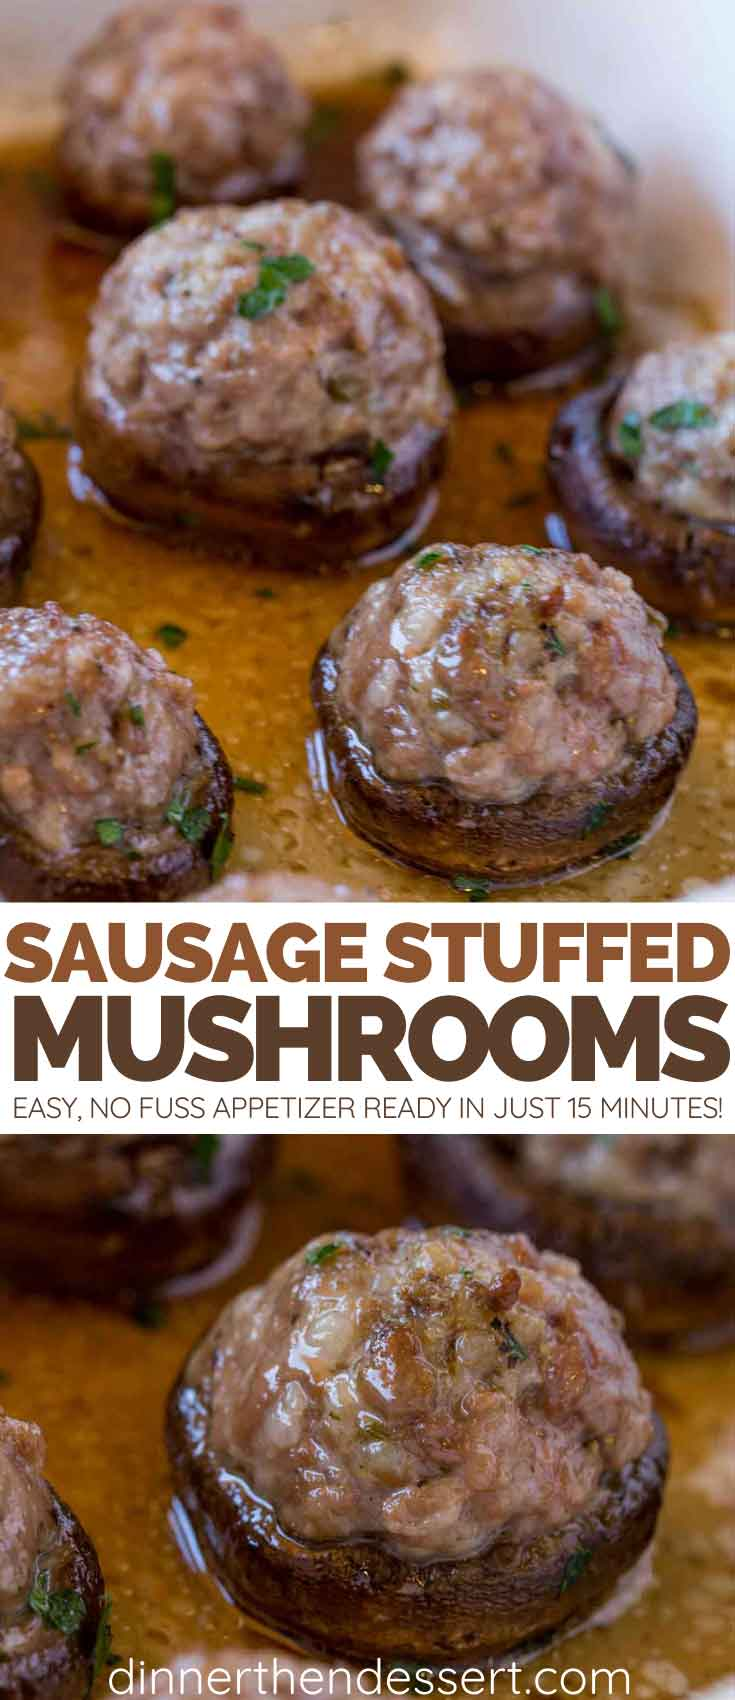 Sausage Stuffed Mushrooms collage